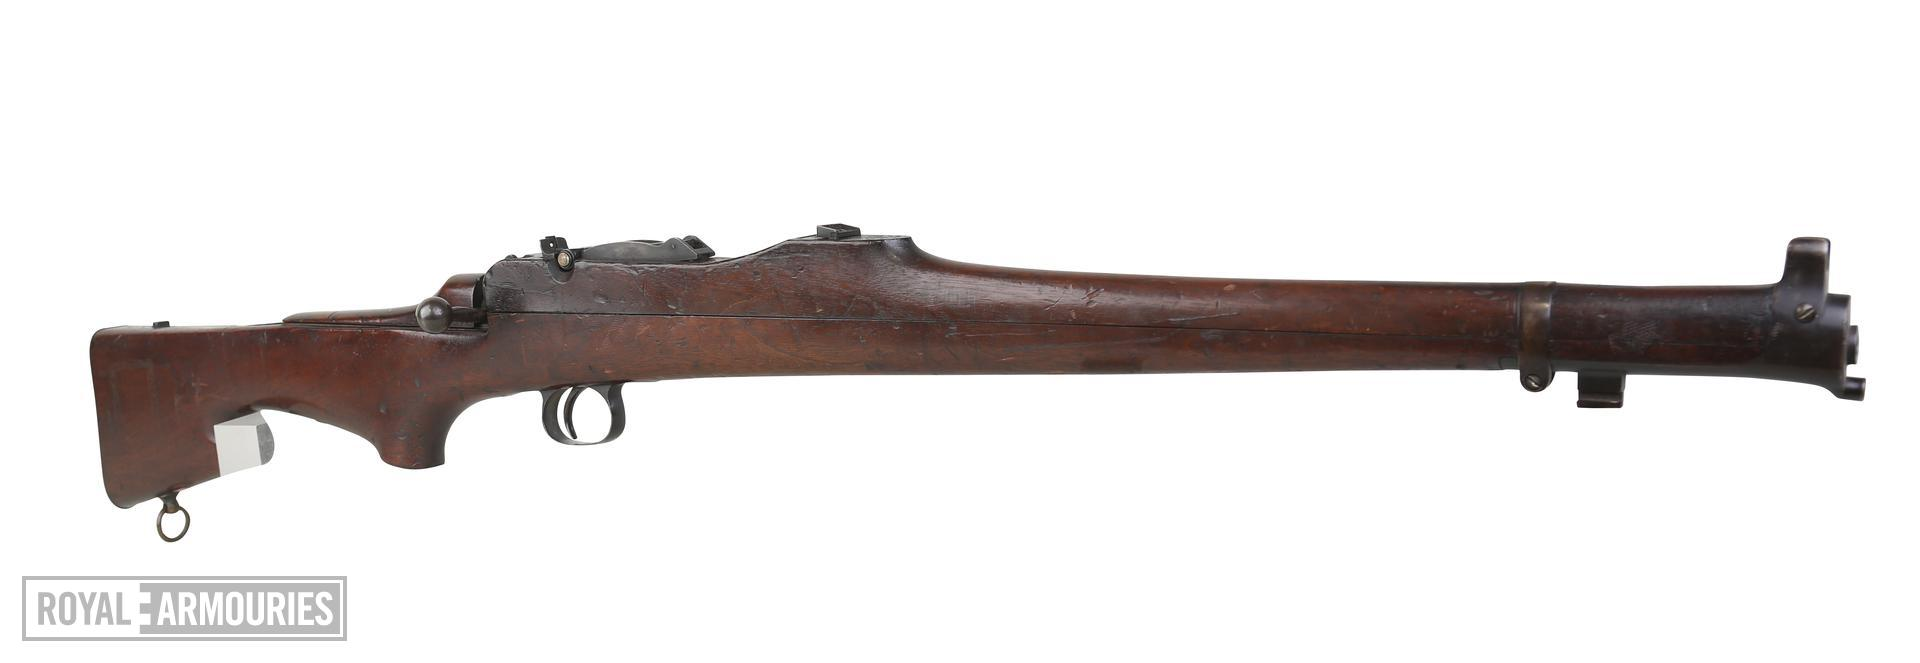 Centrefire bolt-action rifle - Thorneycroft Third Pattern Model 1906